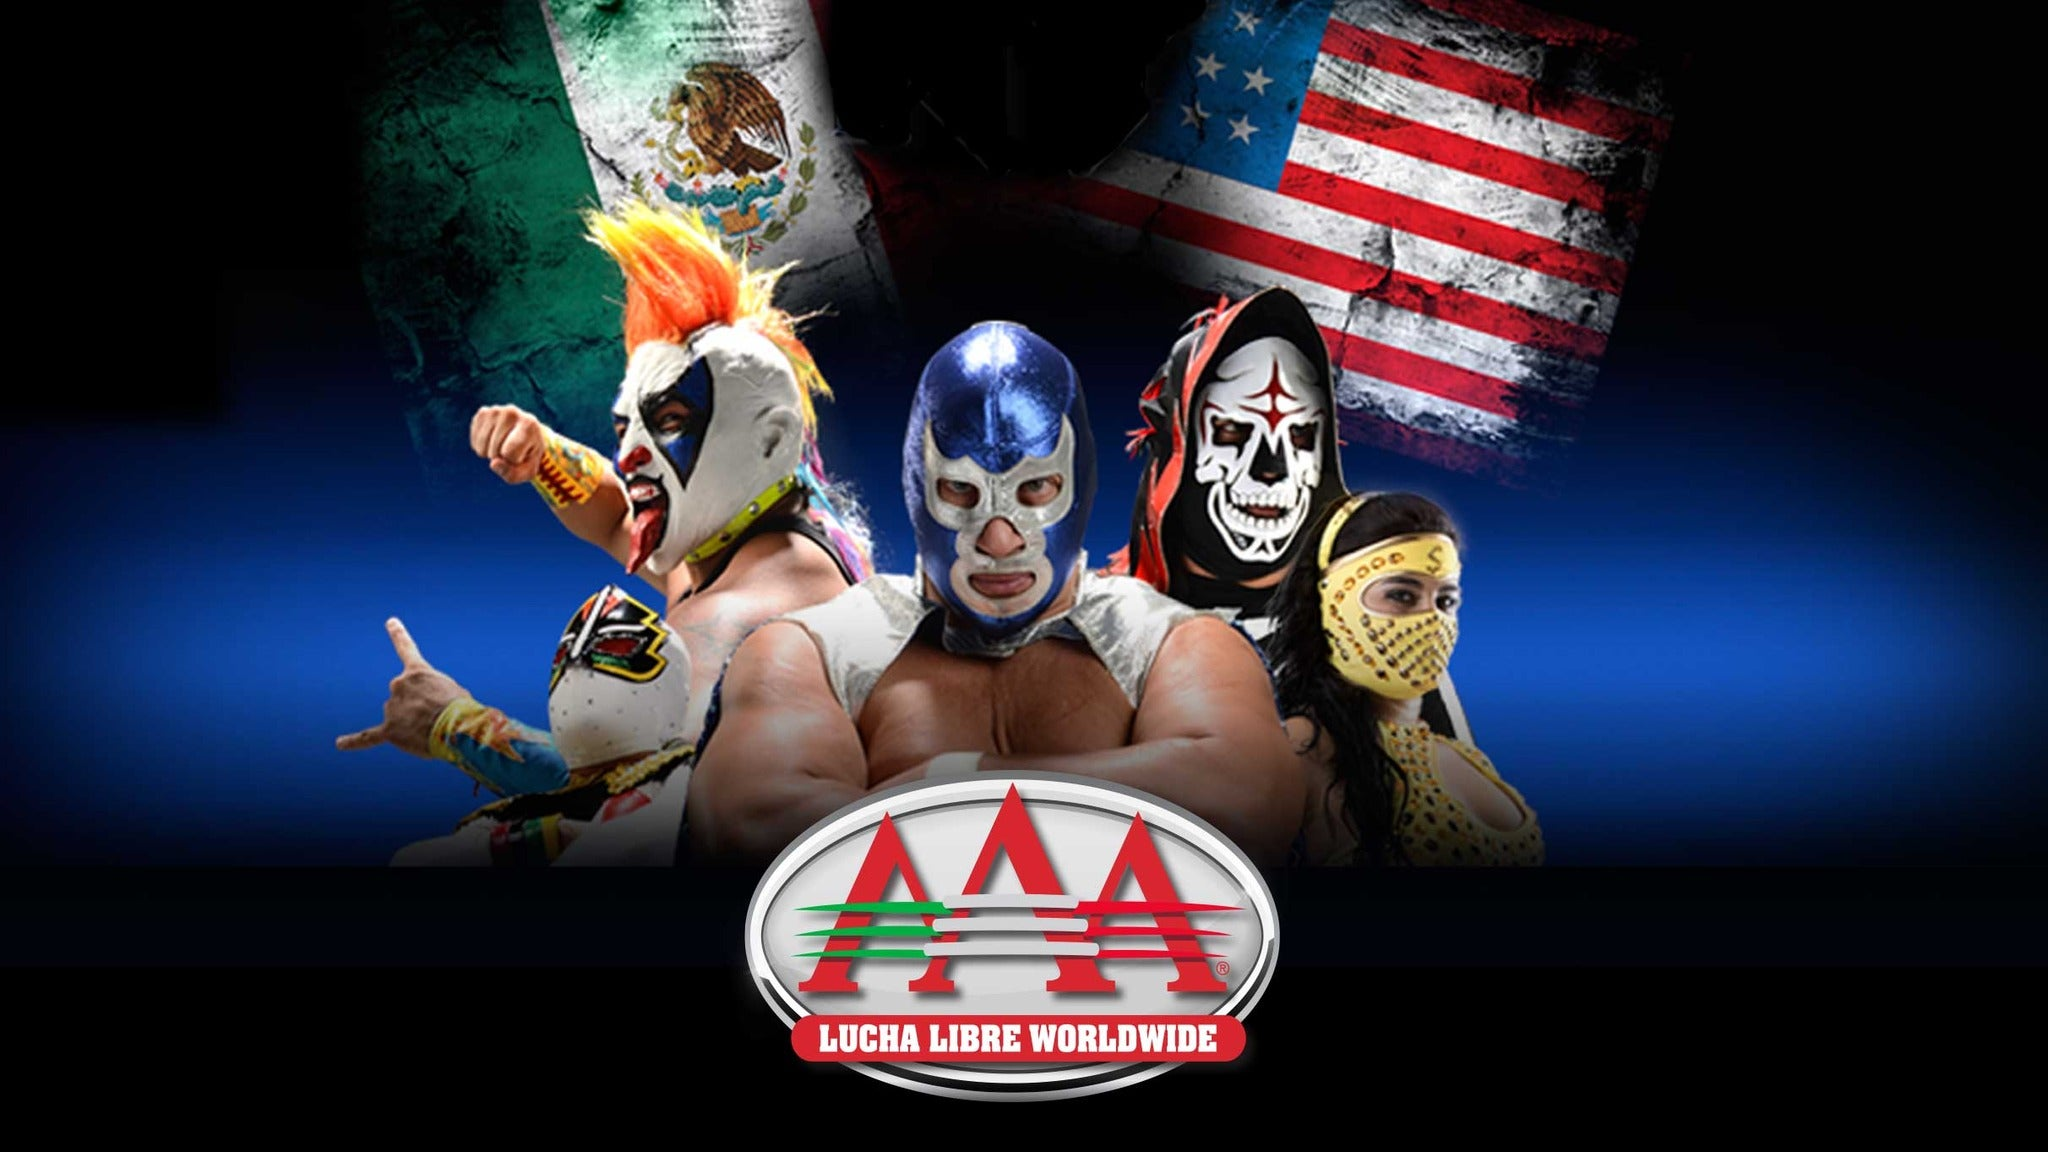 Lucha Libre Aaa Lucha Libre Aaa Tickets Wrestling Event Tickets Schedule Ticketmaster